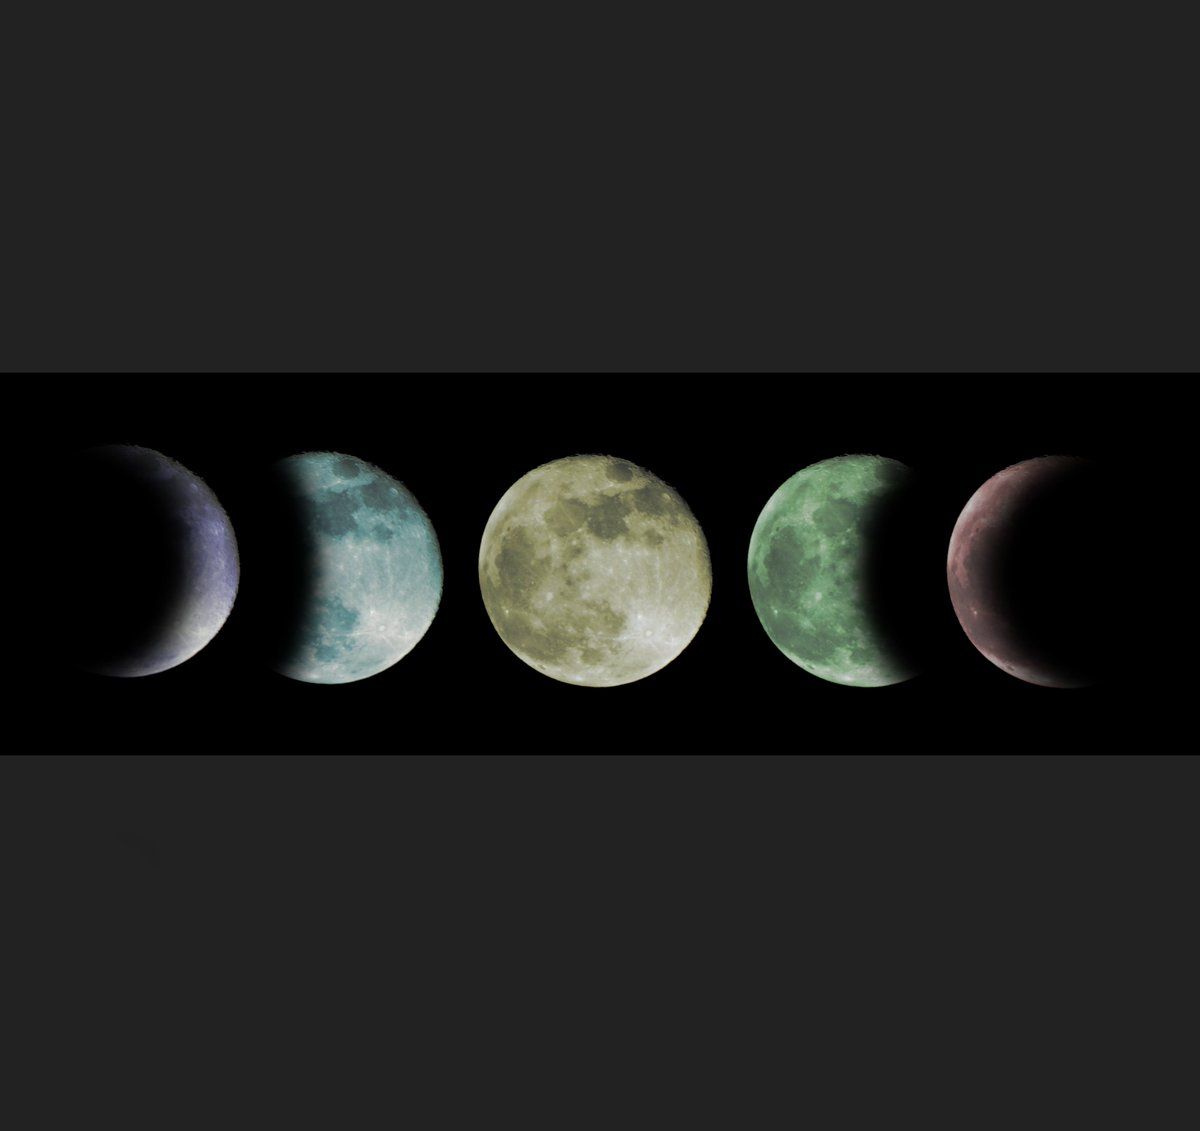 Coloured moon phases at night from my Beyond Earth Collection.  https://www.etsy.com/uk/listing/581518044/coloured-moon-phases-print-moon-space?ref=shop_home_active_40&frs=1 … - https://jakehall.photography/   #photography #designer #photographer